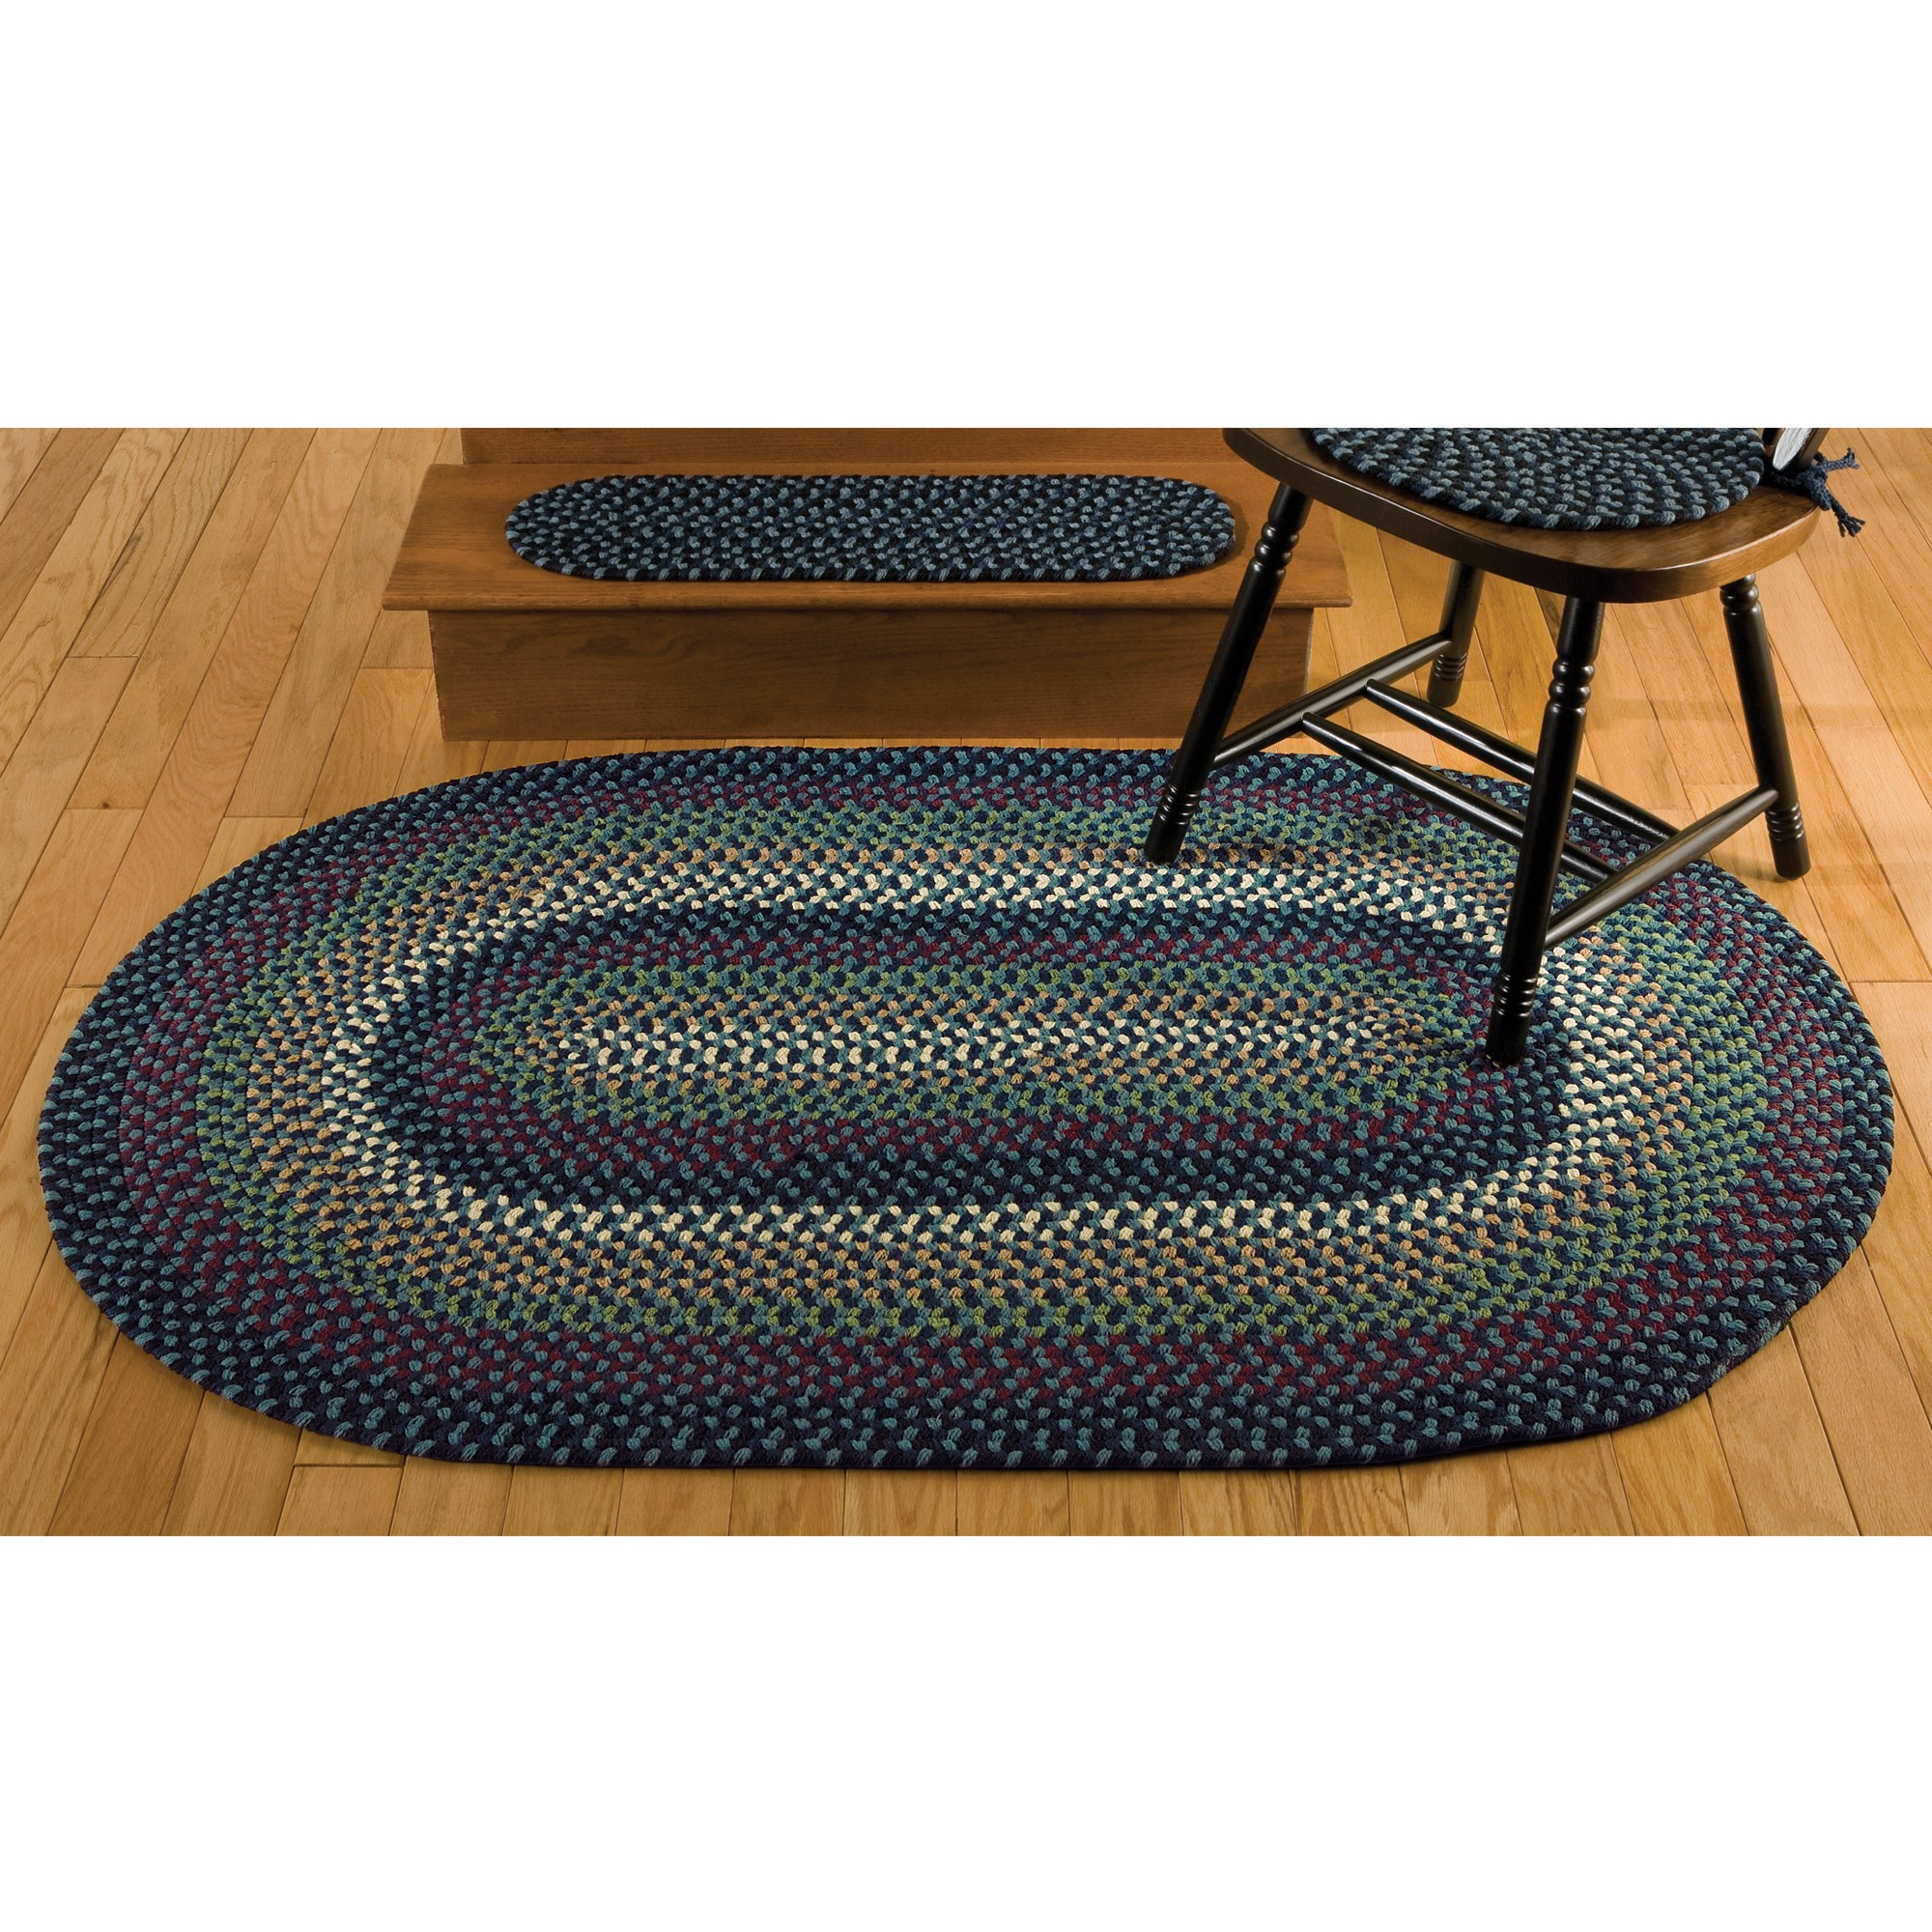 Charming braided rug for floorings and rugs ideas with round braided rugs and braided area rugs